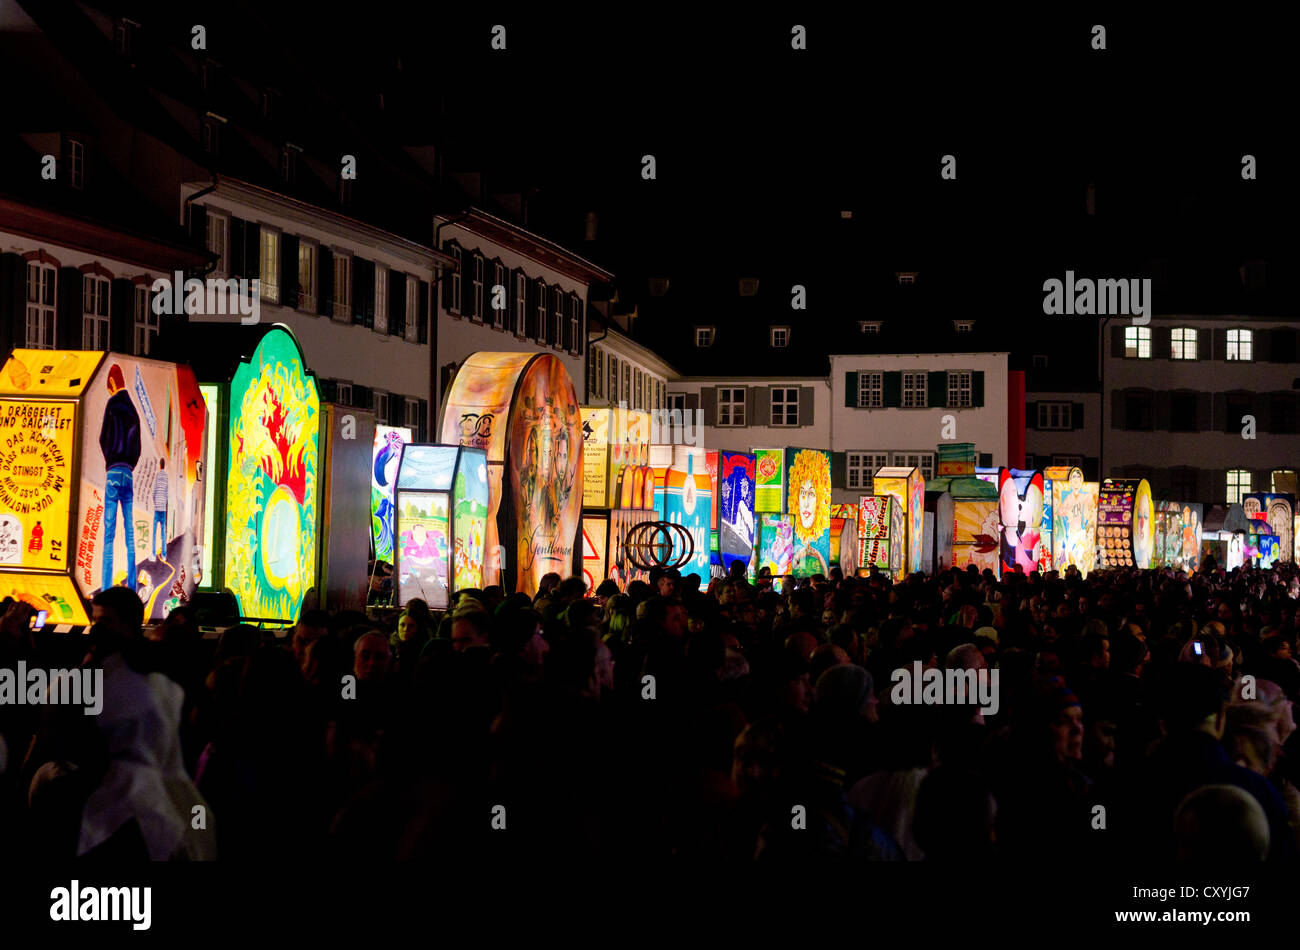 Muensterplatz square at night, decorated with big lanterns on social and political subjects, Basel, Switzerland, Stock Photo